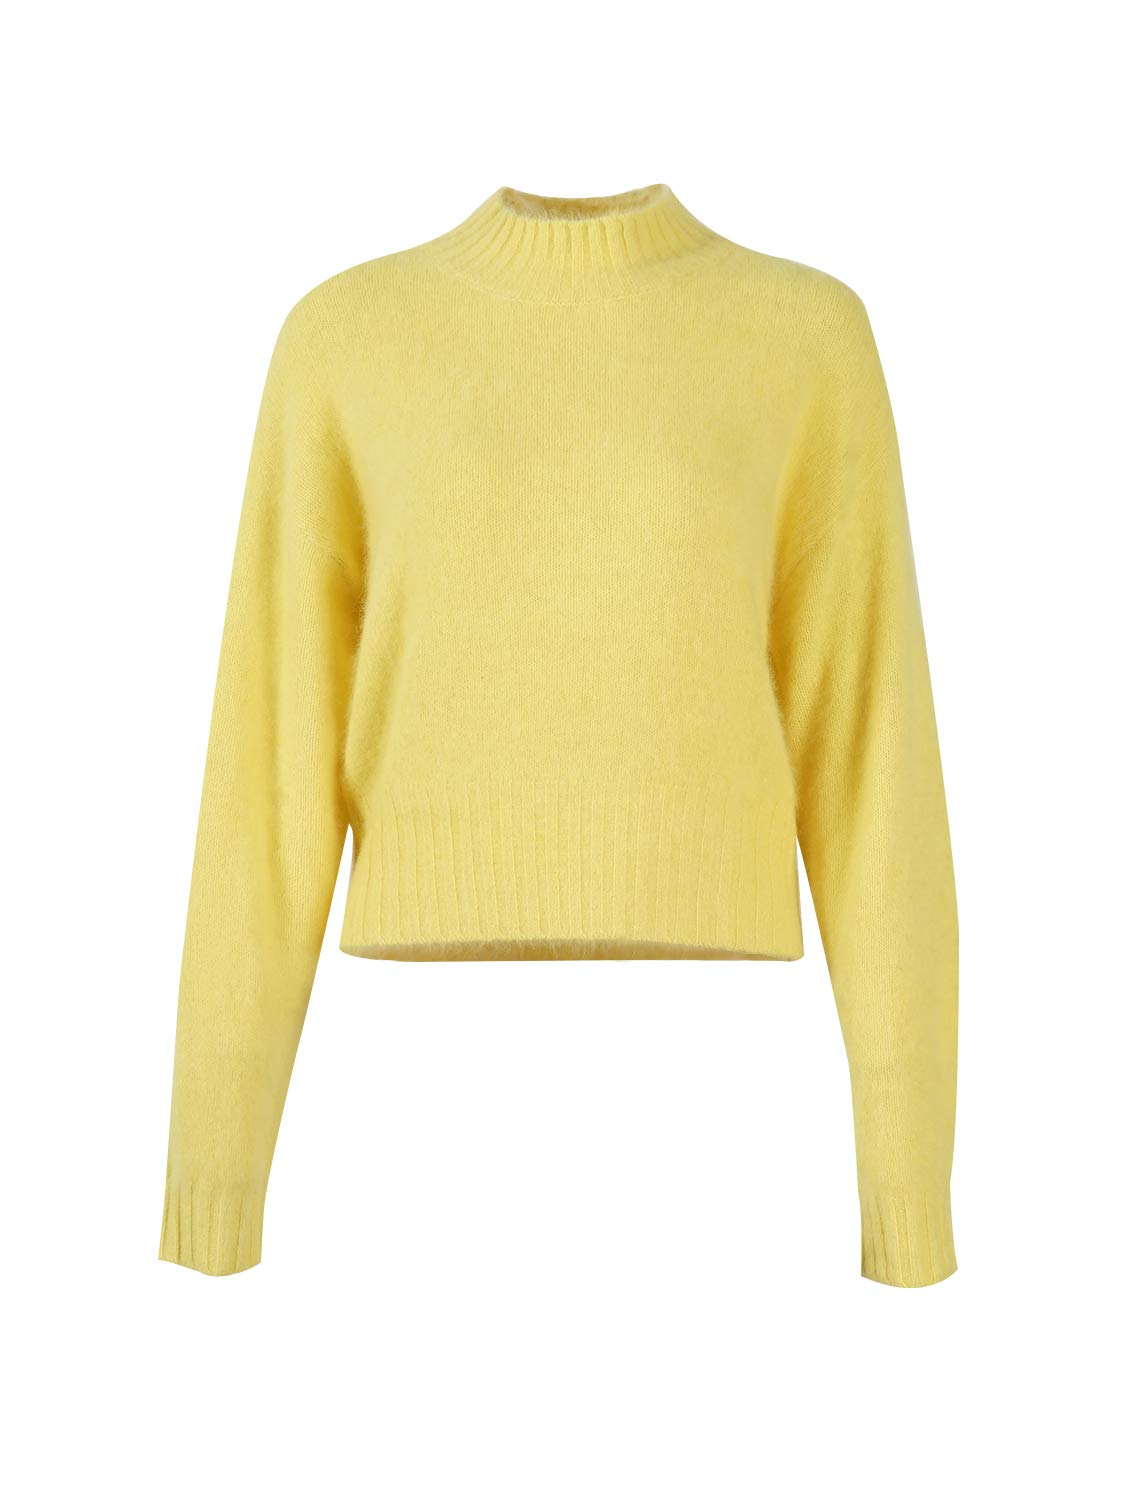 Peplum Pointe Women's Turtleneck Cozy Long Sleeve Casual Sweater Knit Super Soft Pullover